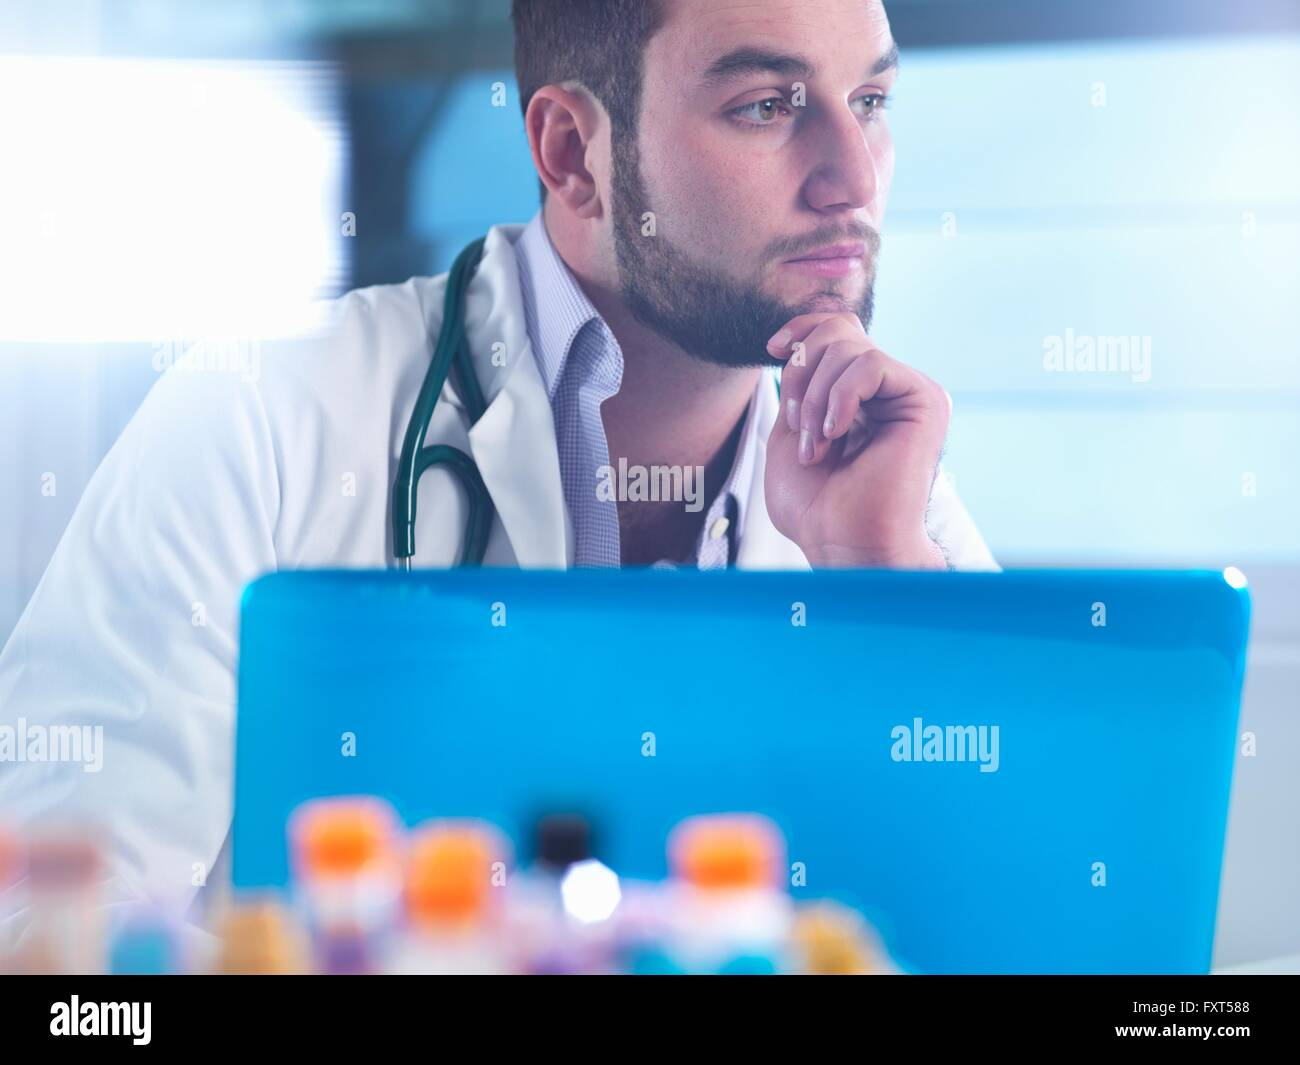 Doctor thinking about patient medical test results, samples in foreground - Stock Image